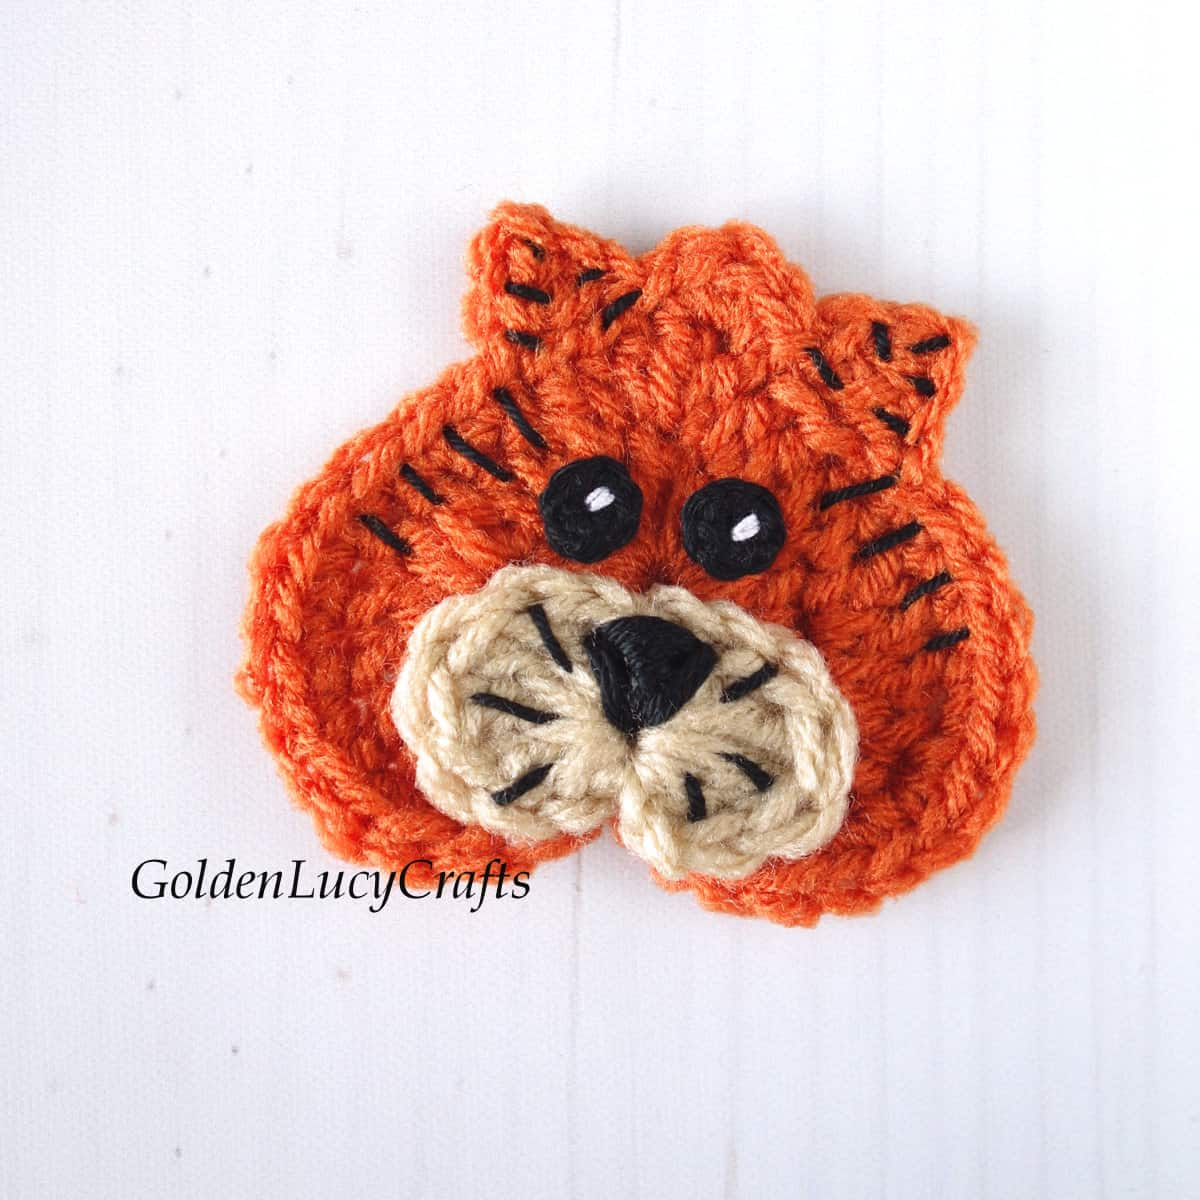 Crocheted tider applique with crocheted eyes.